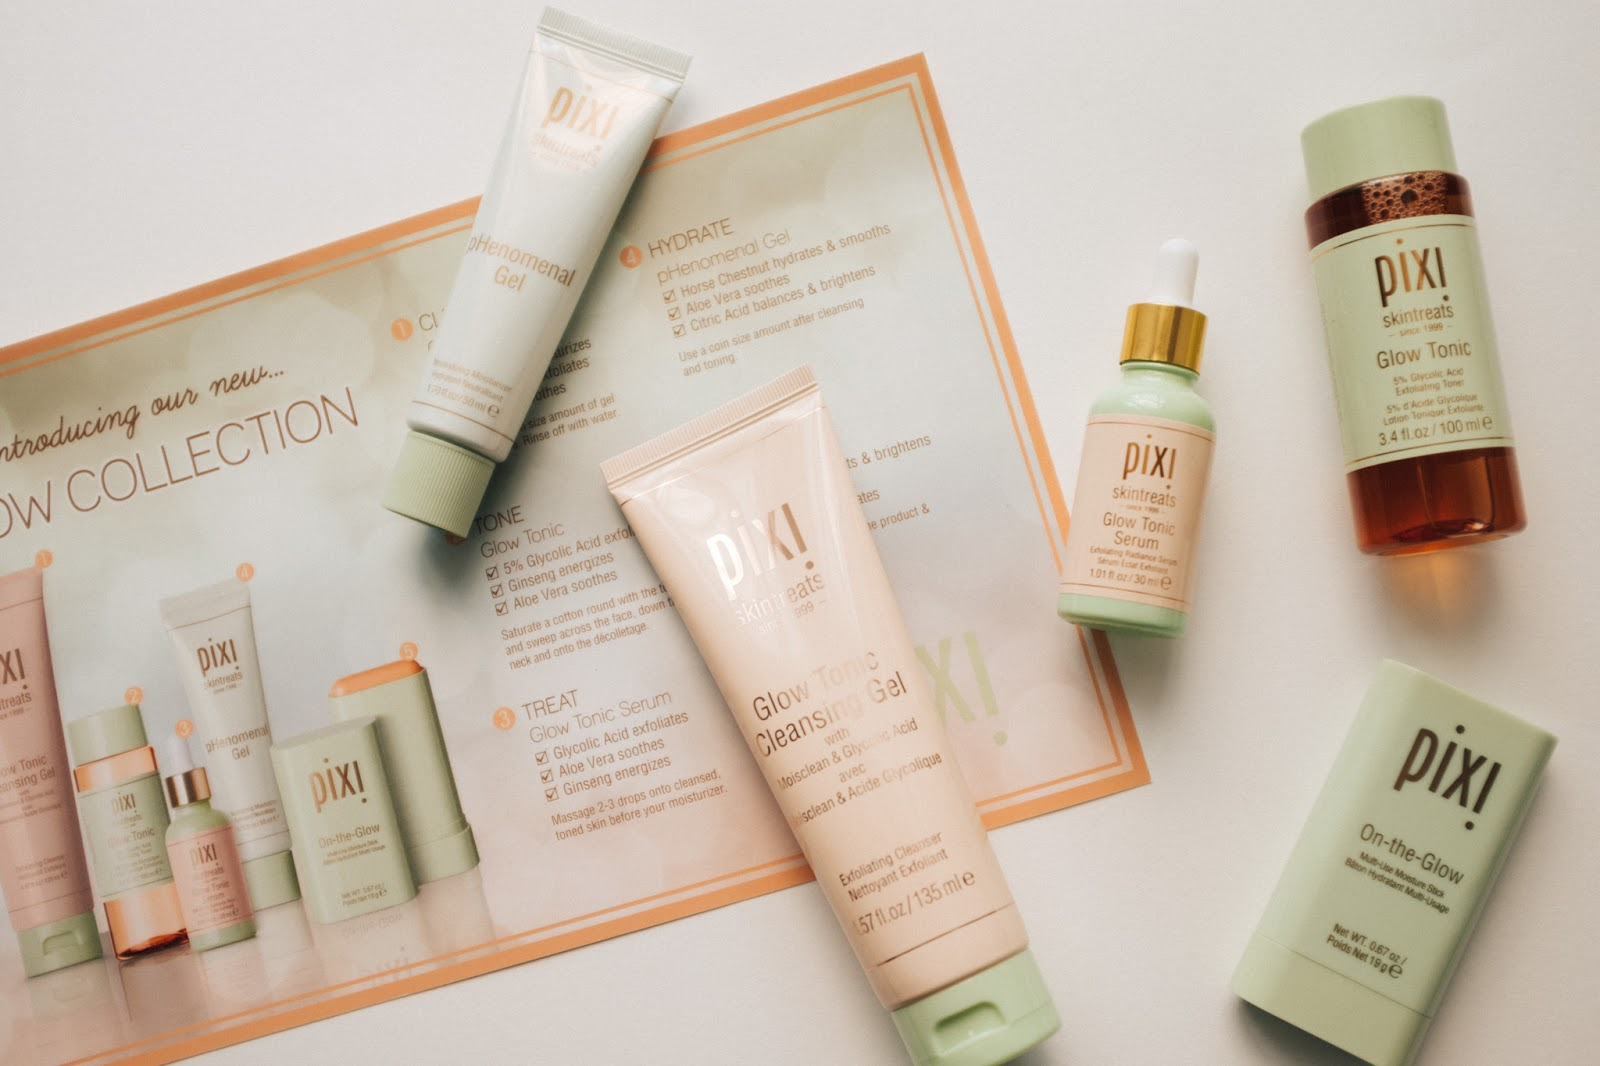 Pixi Glow Tonic Collection 2019